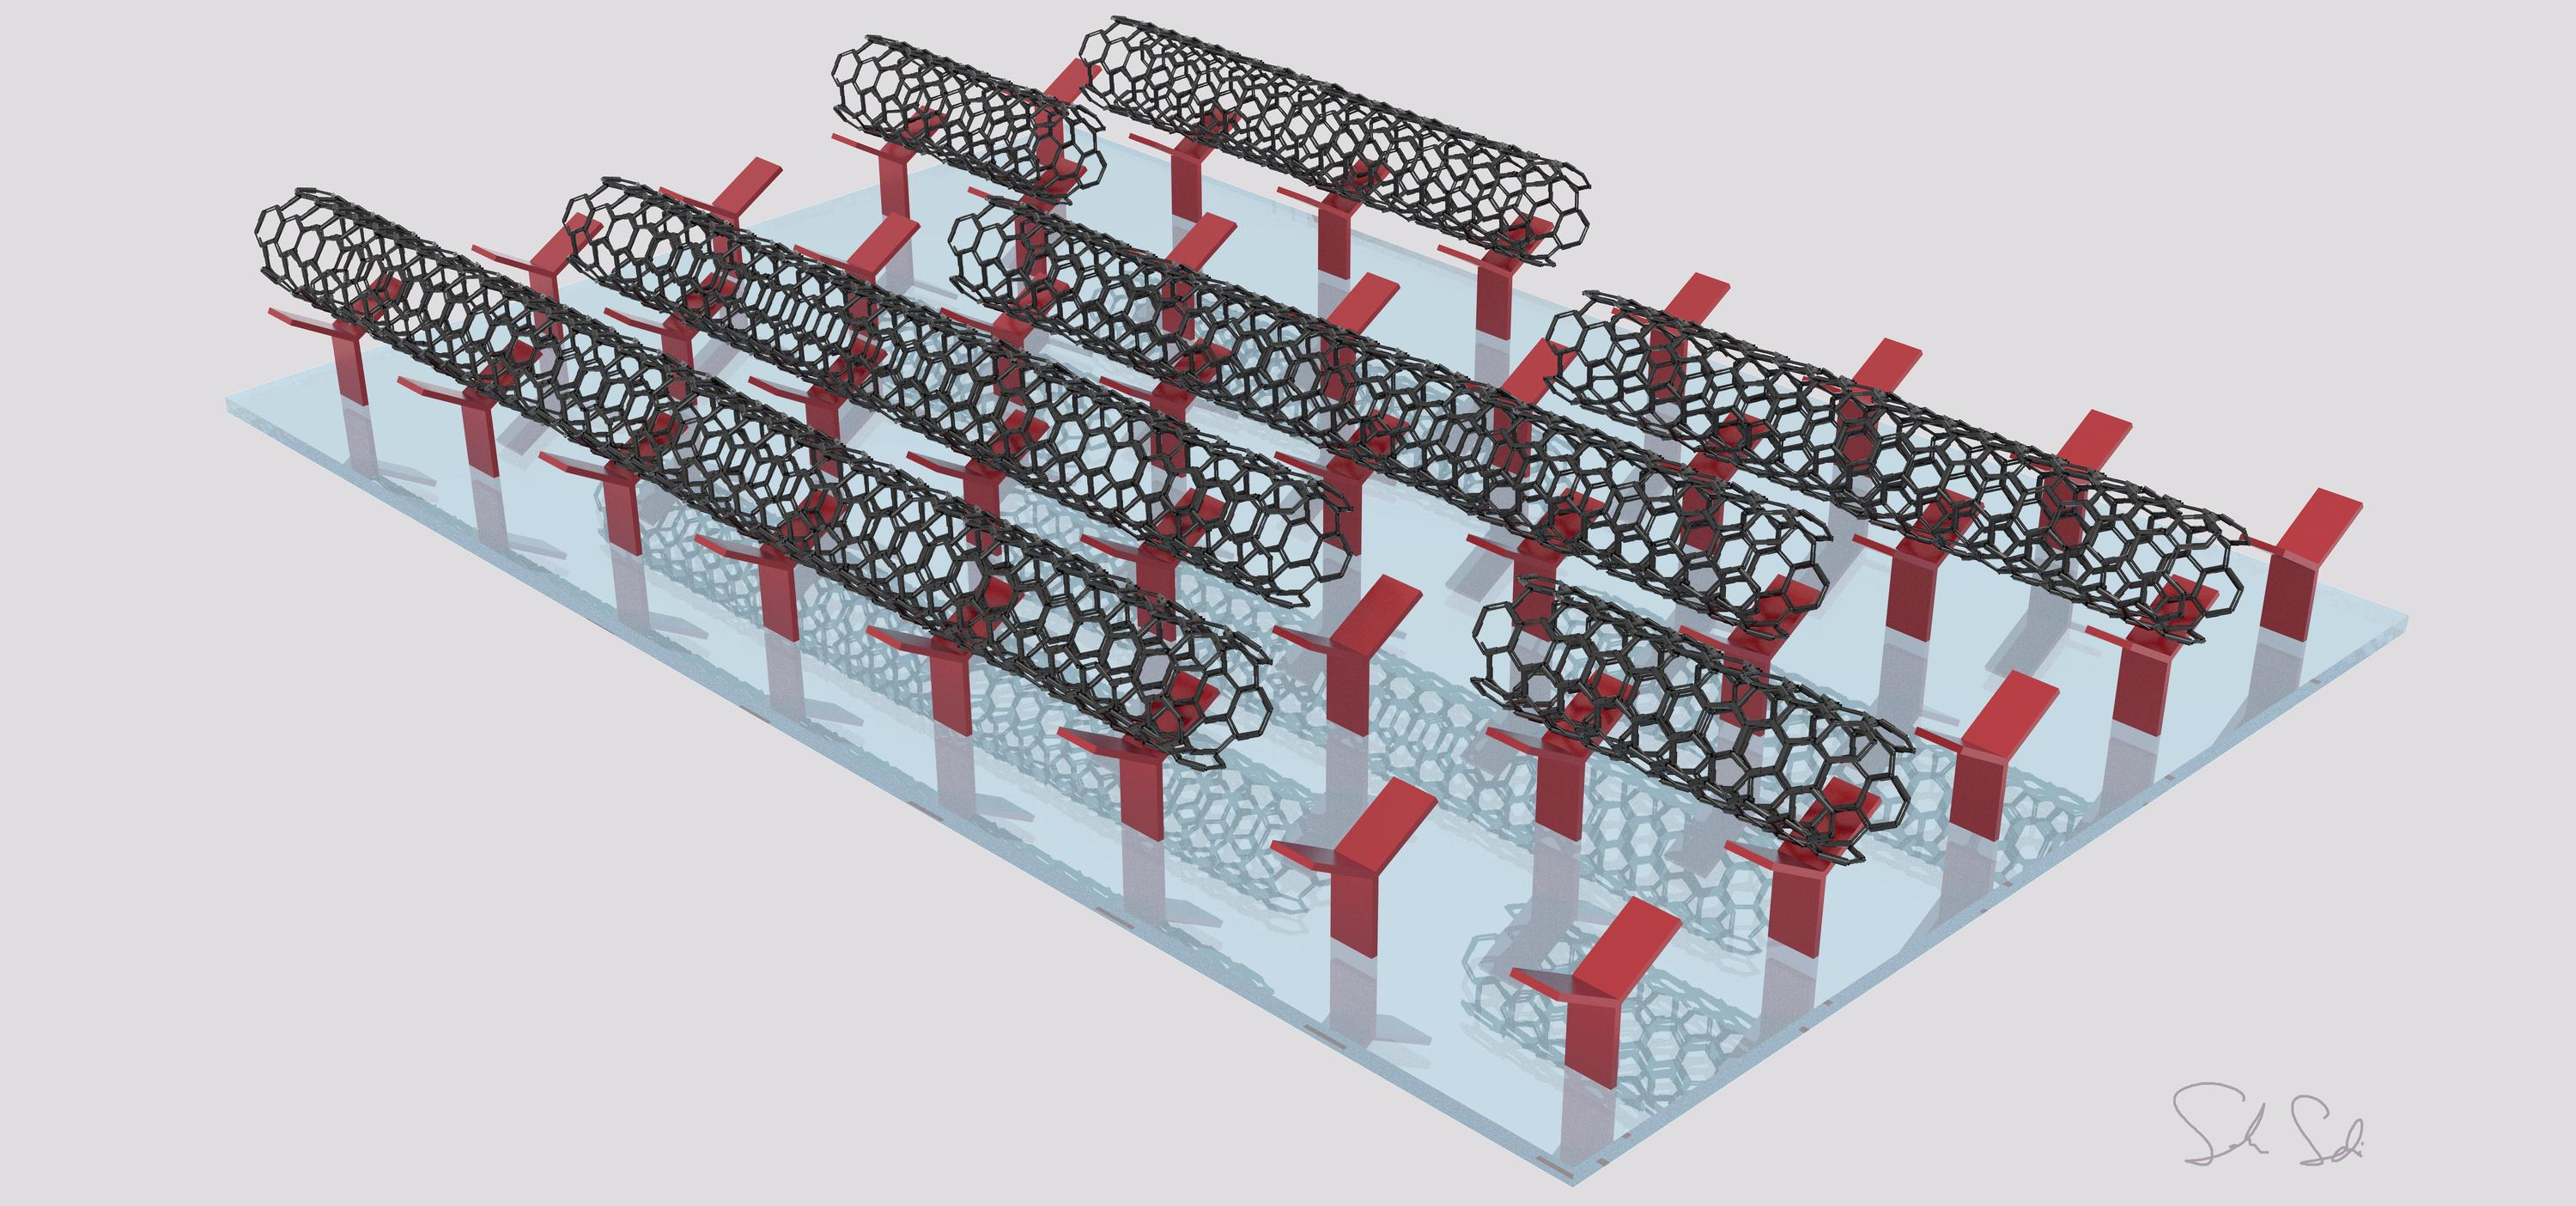 Illustration of carbon nanotubes depositing on a surface with the help of the alignment relay technique.